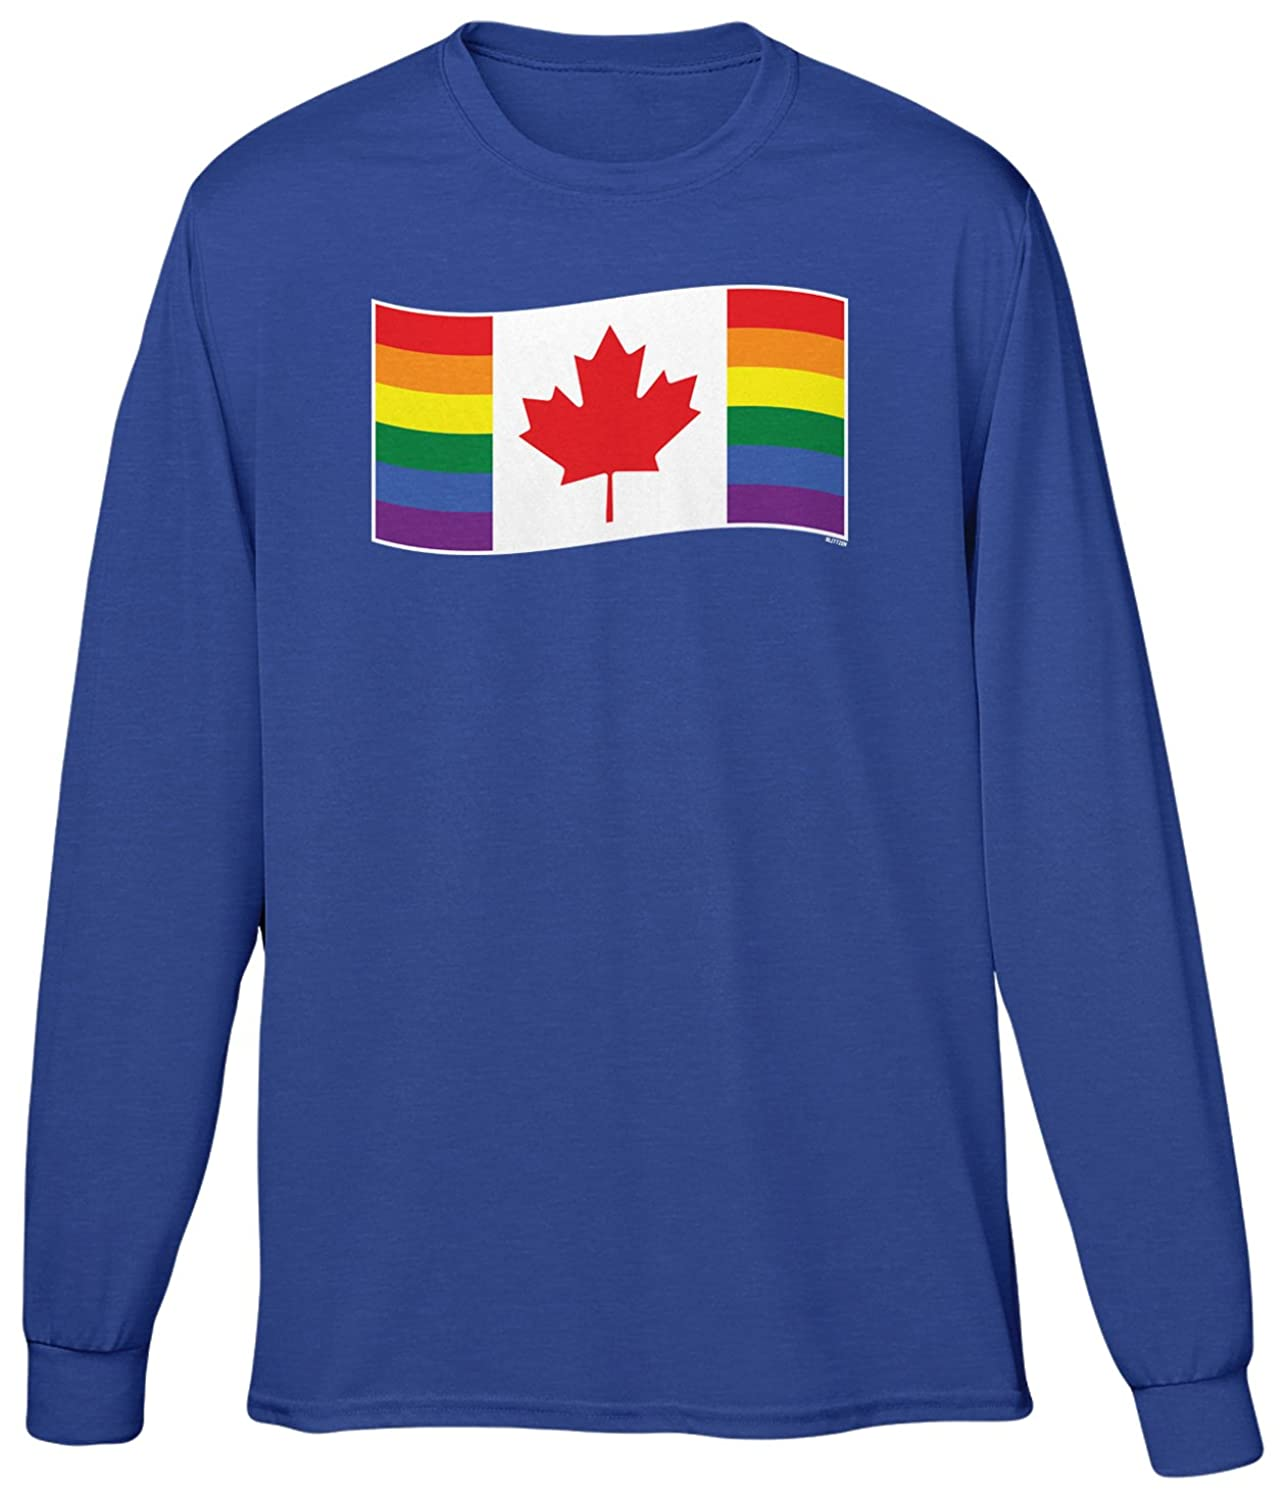 Blittzen Mens Long Sleeve T-shirt Canada Gay Pride Flag